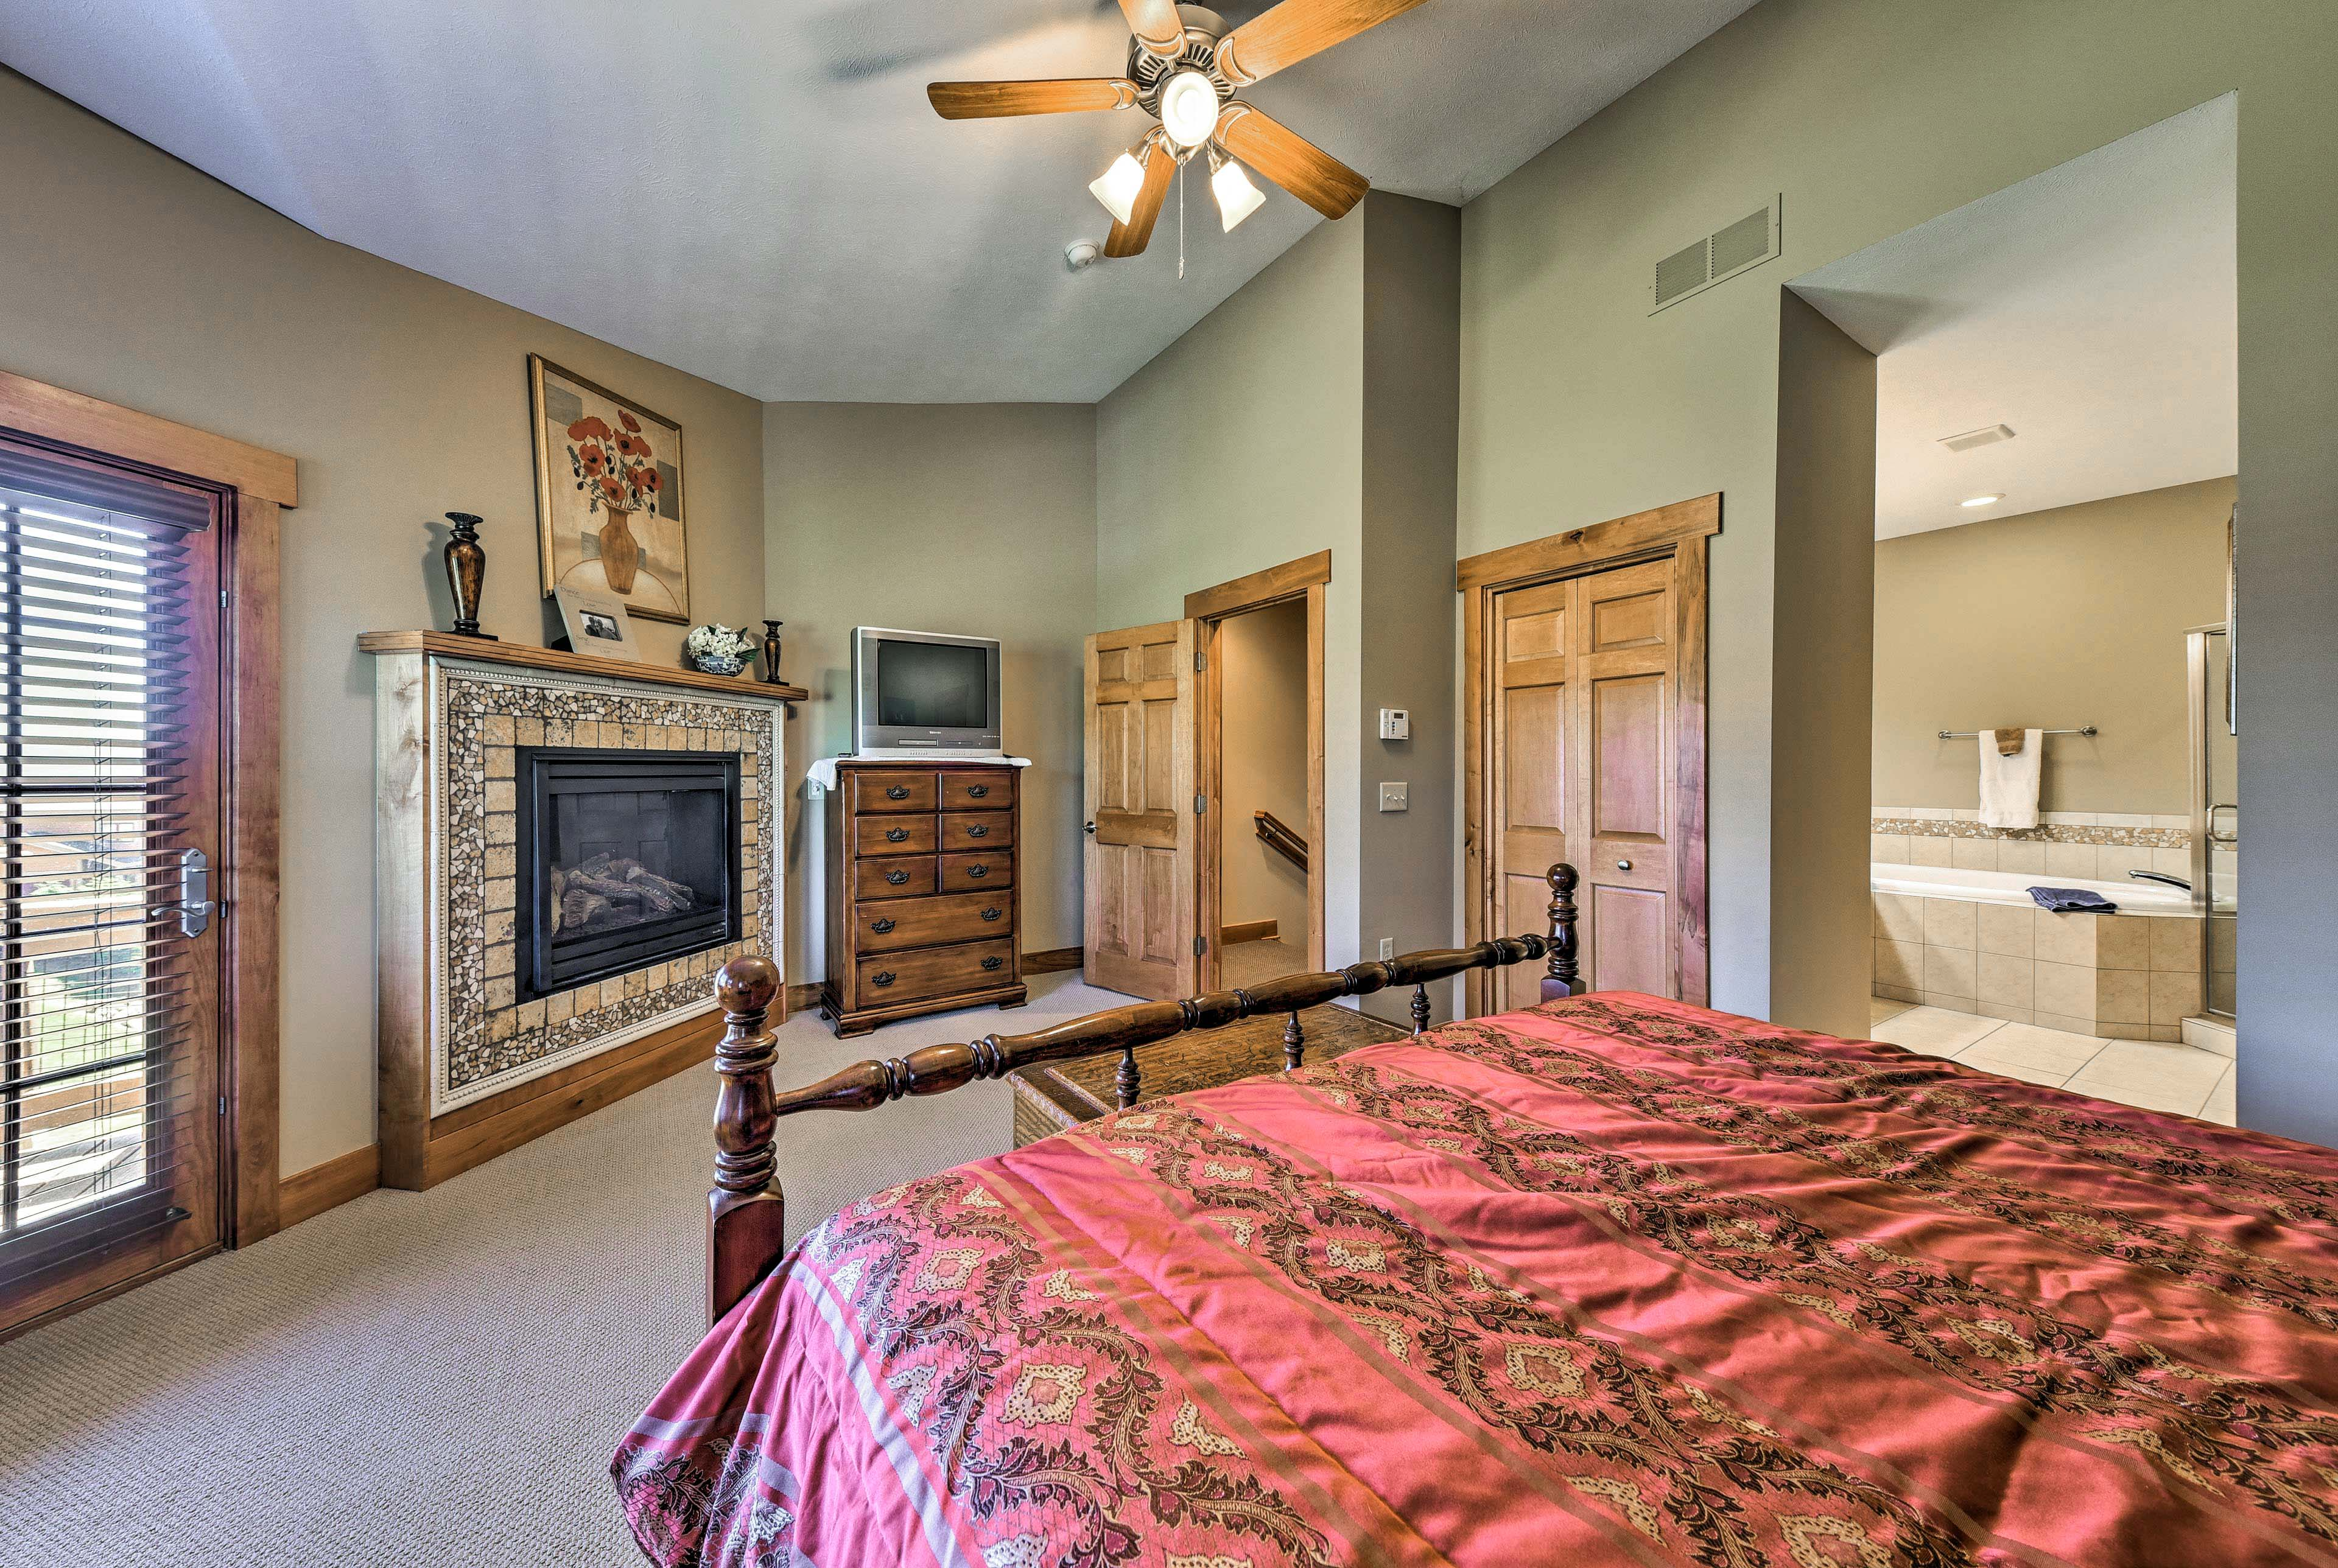 Complete with a fireplace, you may never want to leave this cozy bedroom!